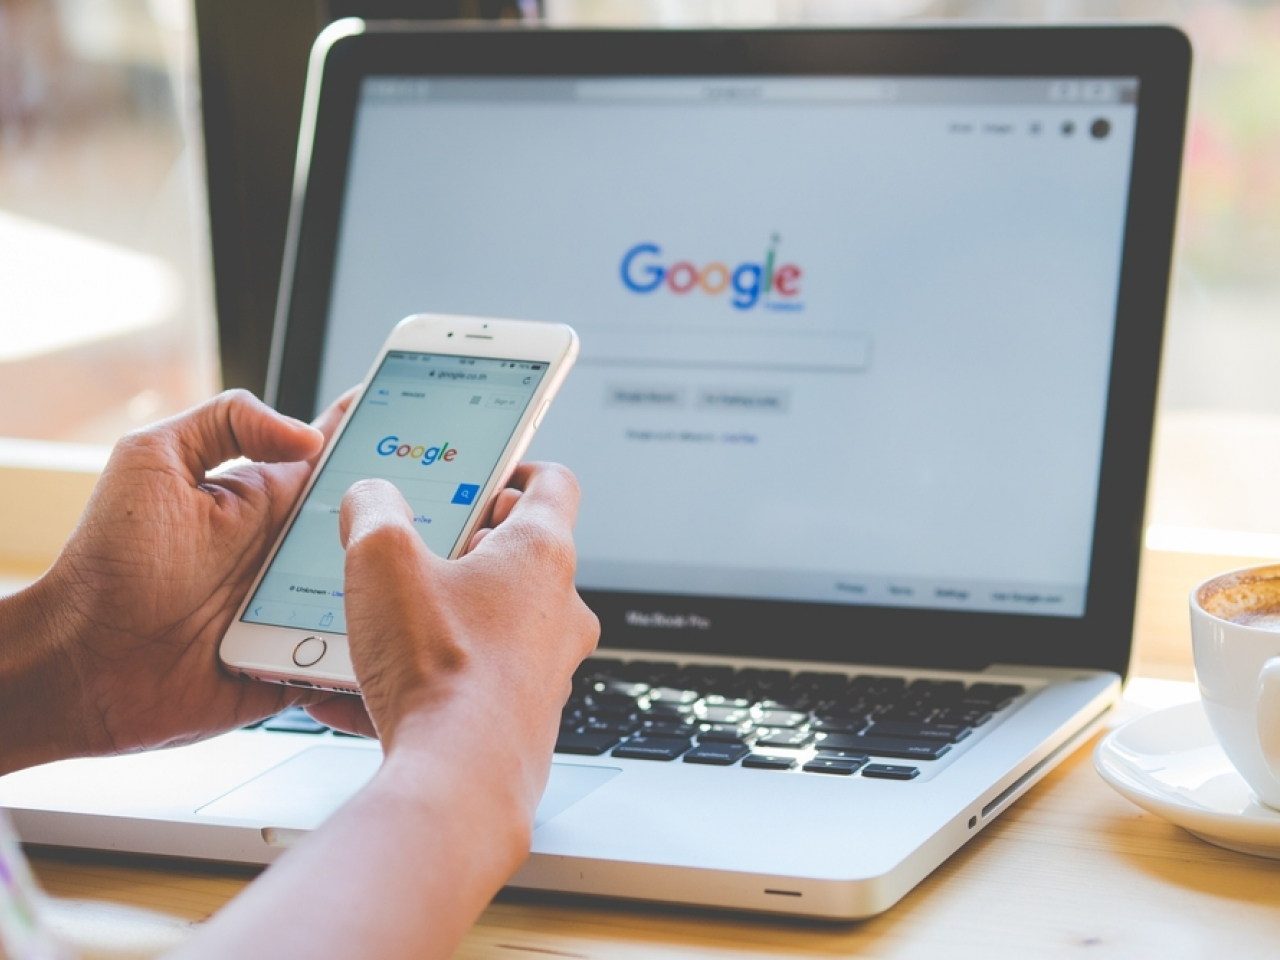 The Korea Fair Trade Commission investigated Google for allegedly blocking local smartphone makers from using other operating systems. Image: Shutterstock